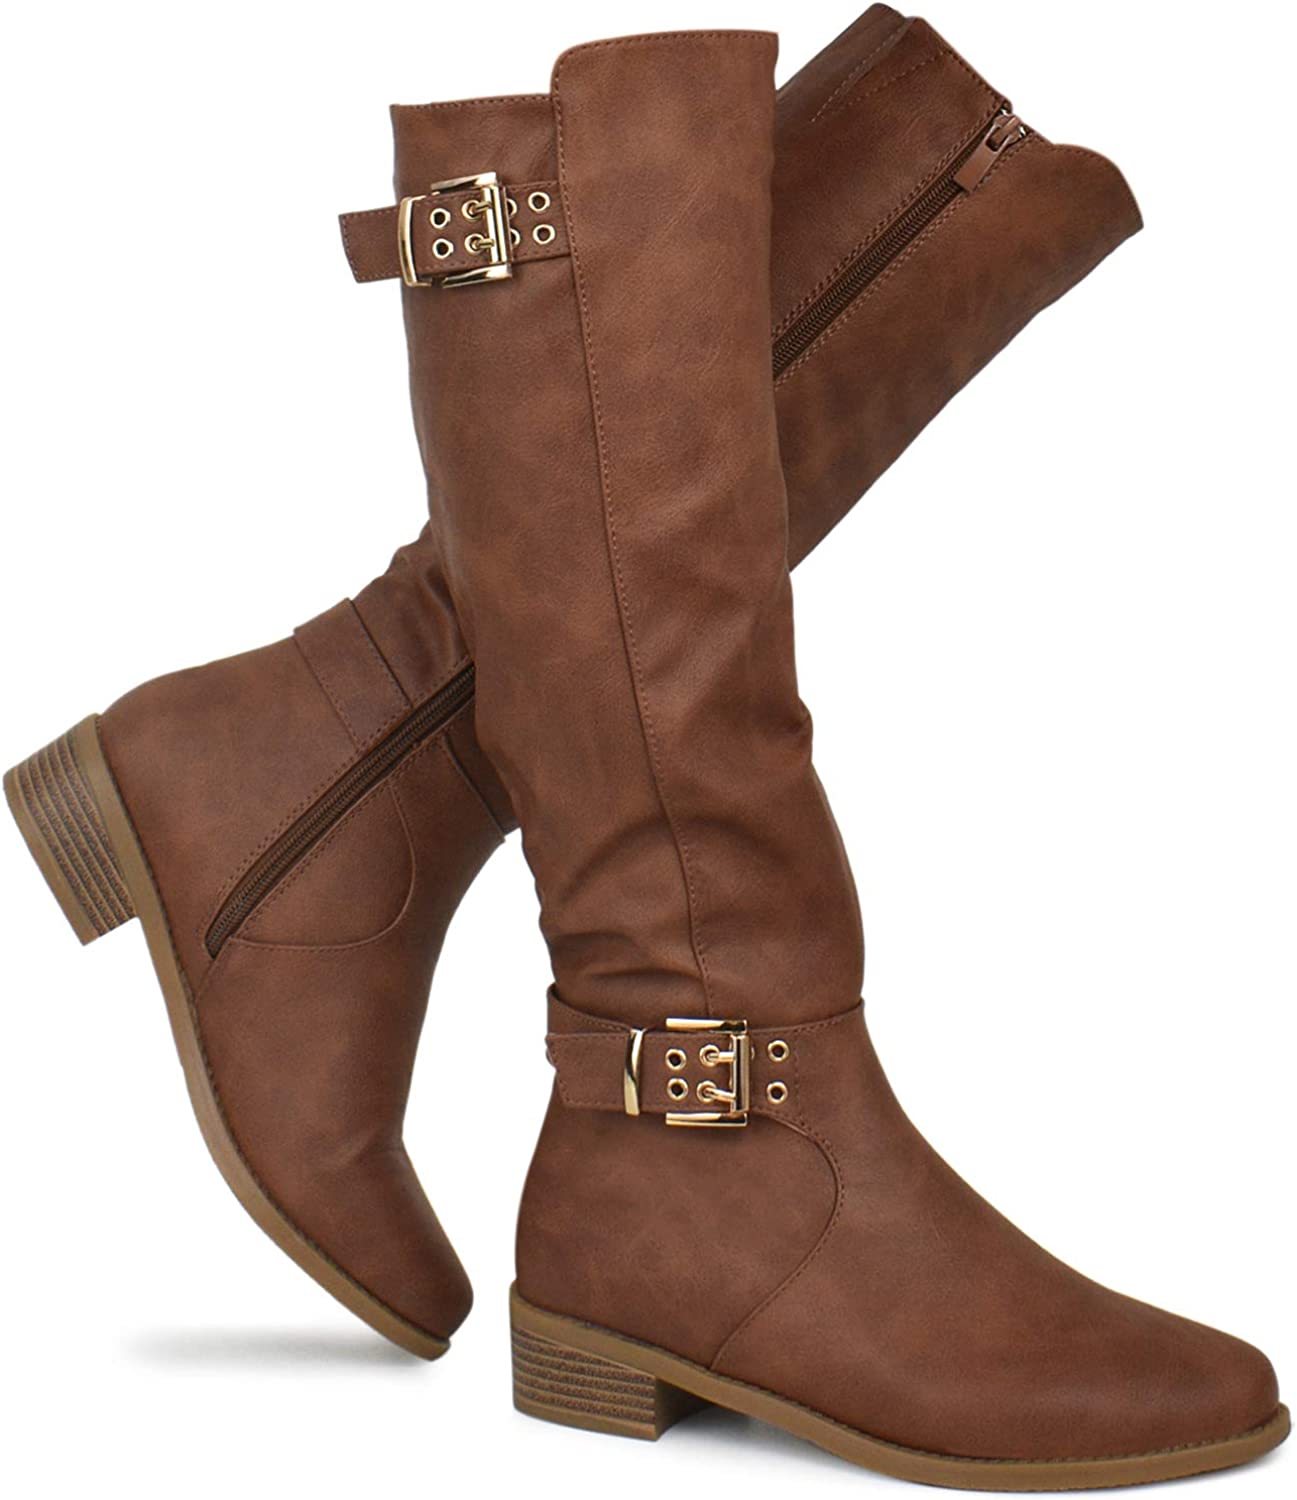 Premier Standard - Strappy Buckle Knee High Boots - Comfortable Zipper Low Stacked Heel Boots